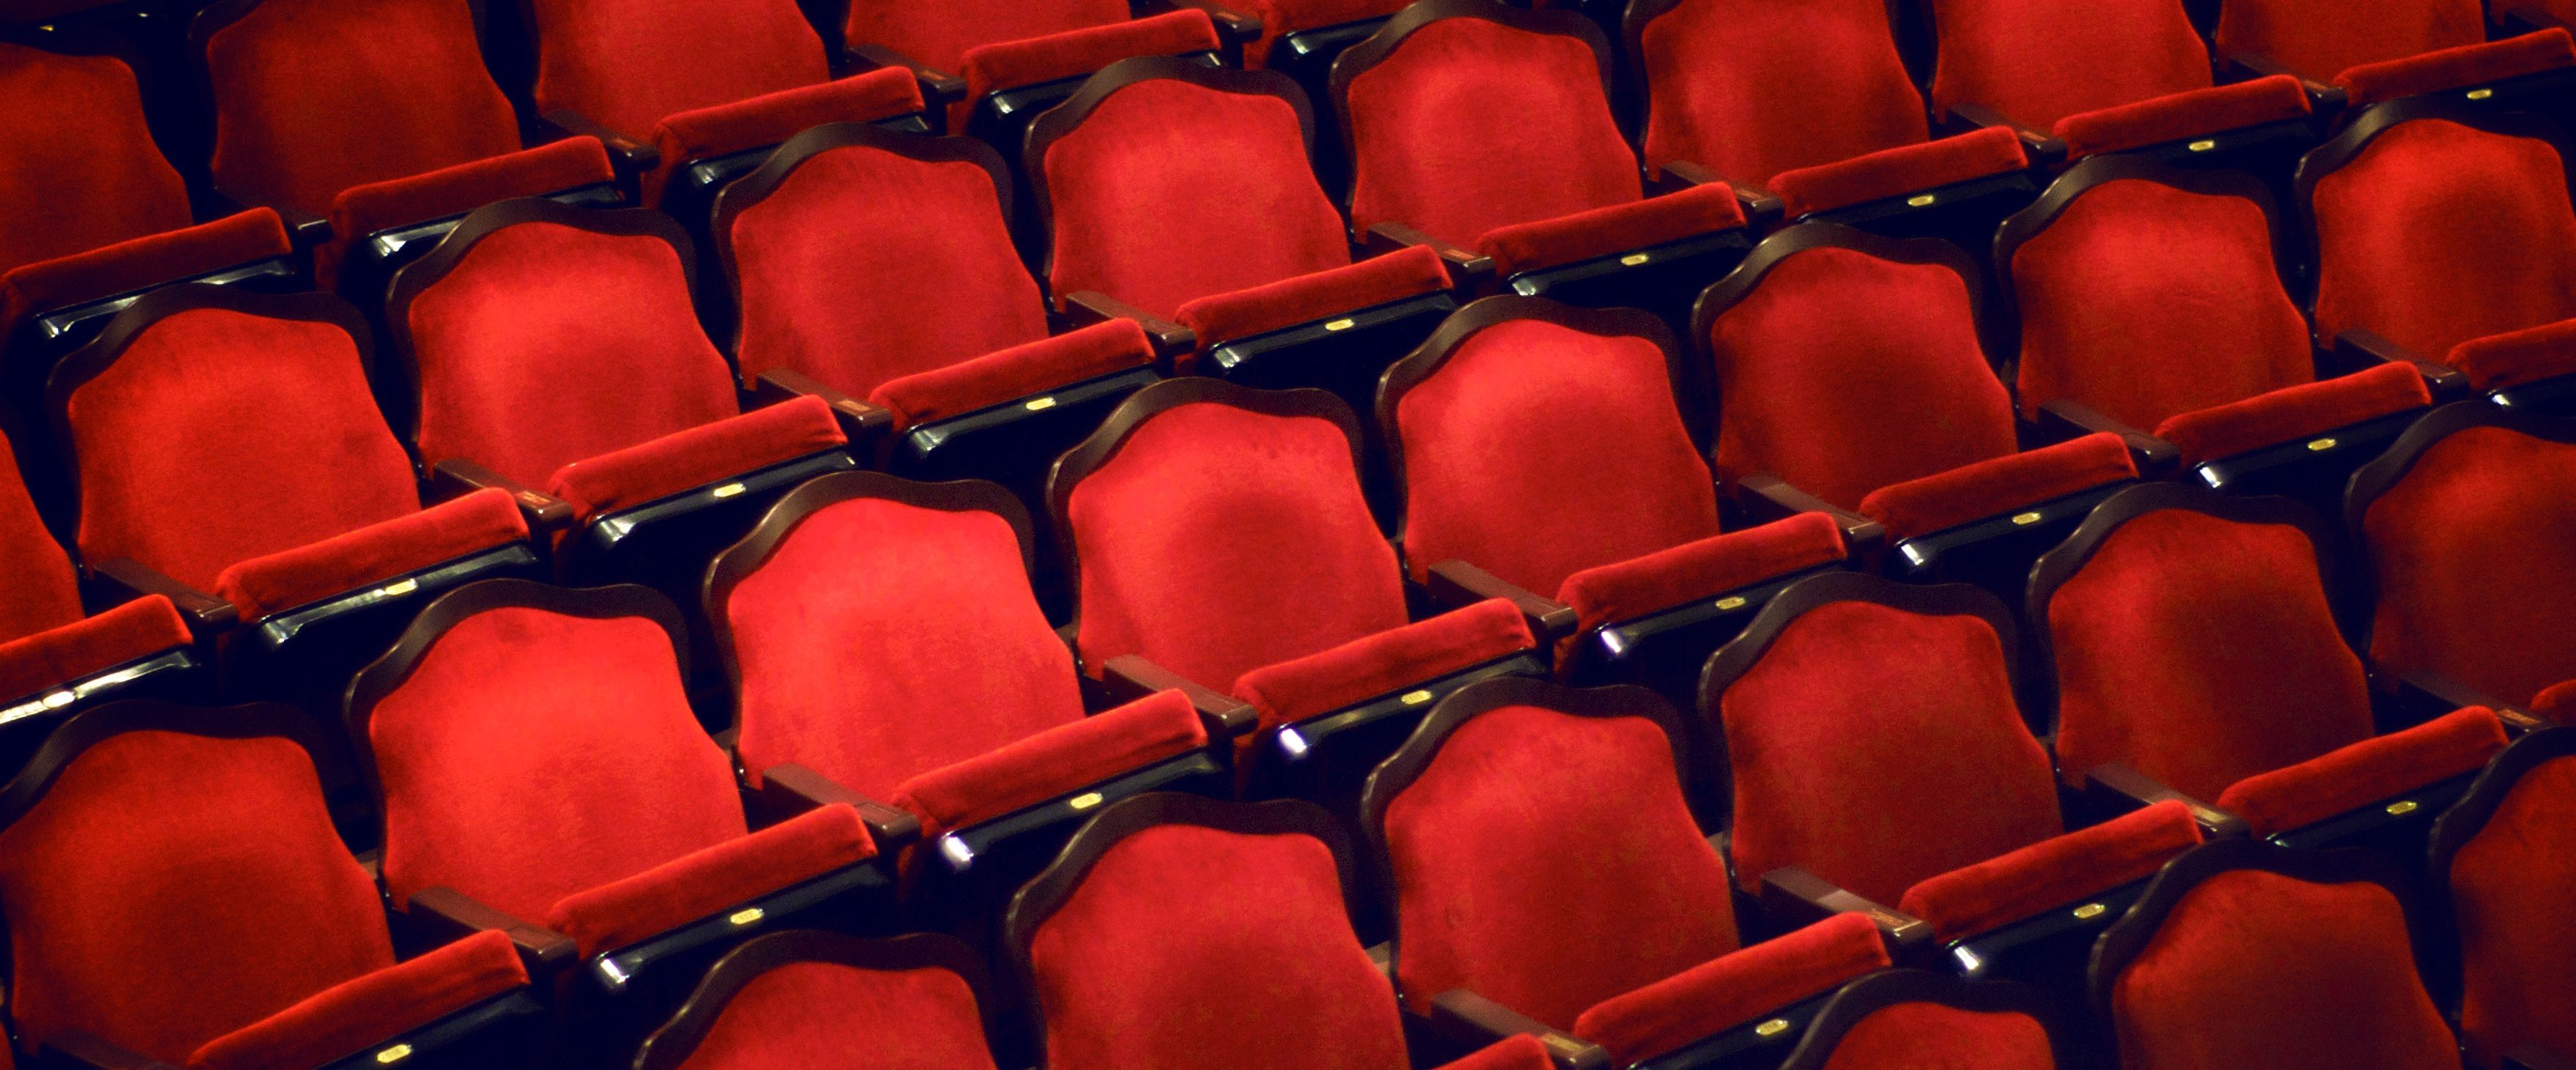 You should be very careful while giving order for the chairs if you need to choose chairs for the theaters.